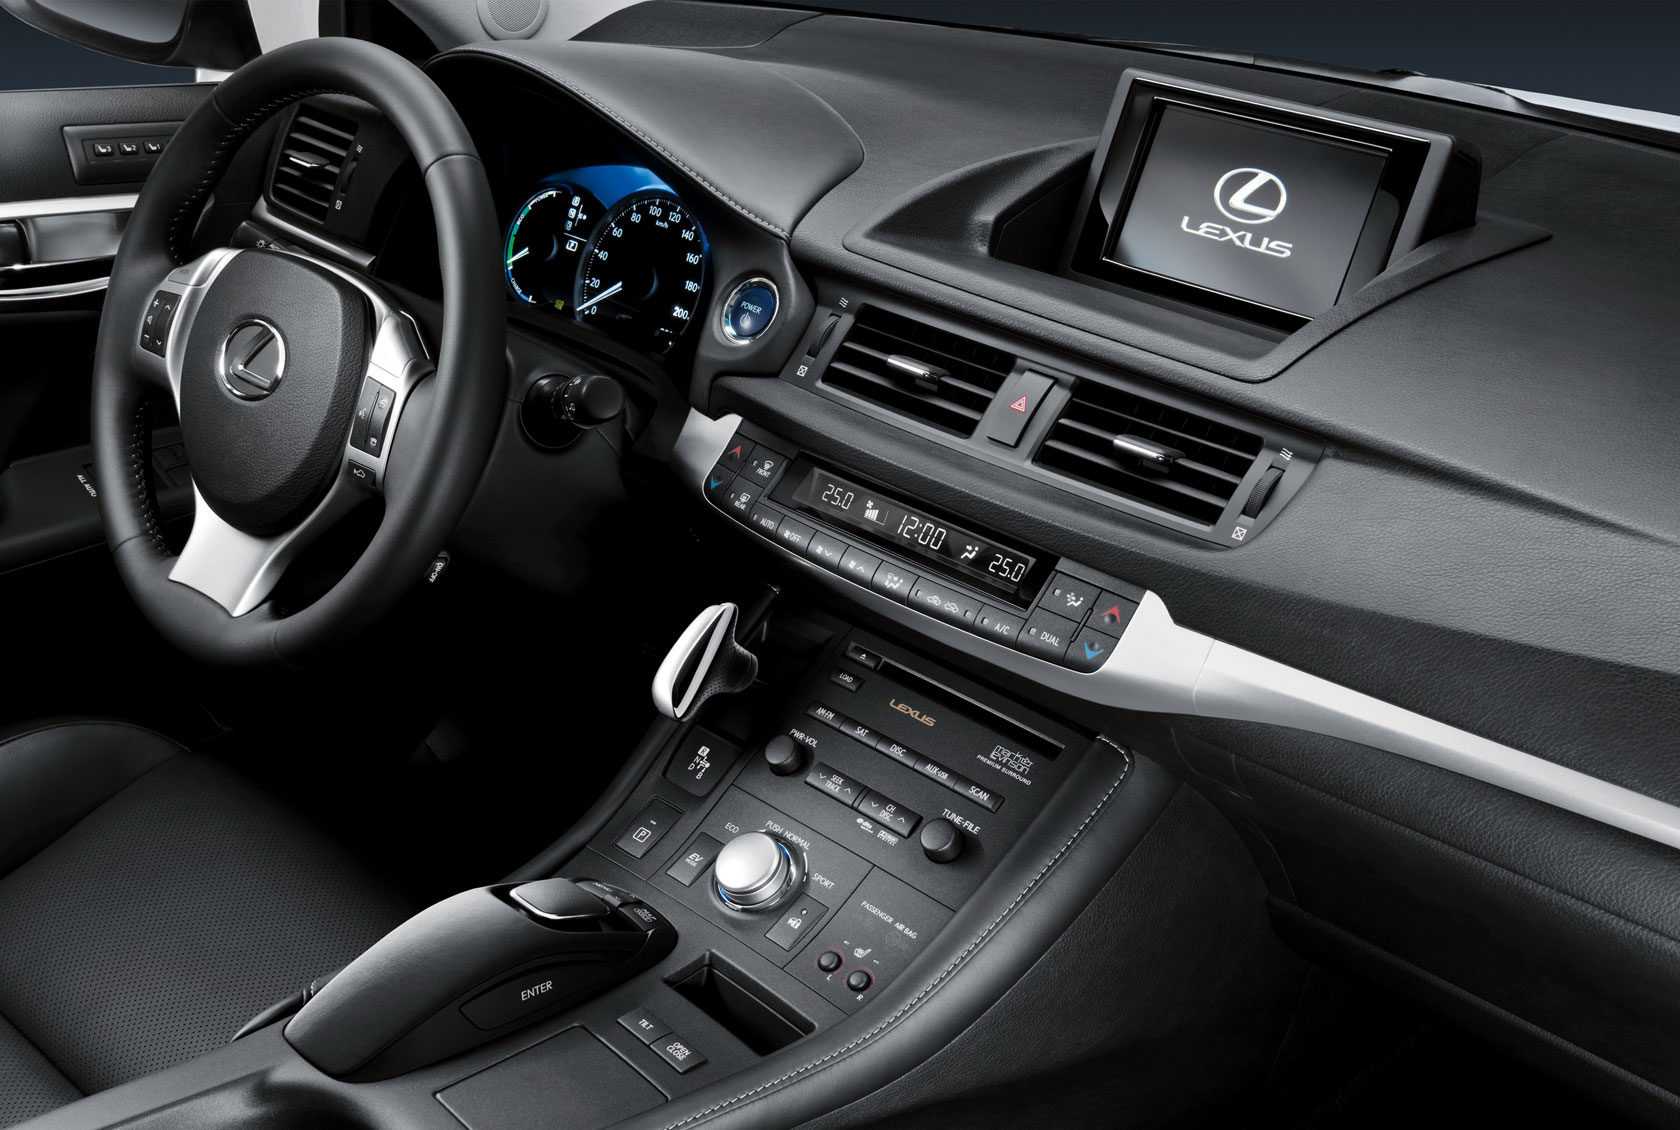 Index of /images/gallery/official-lexus-ct-200h